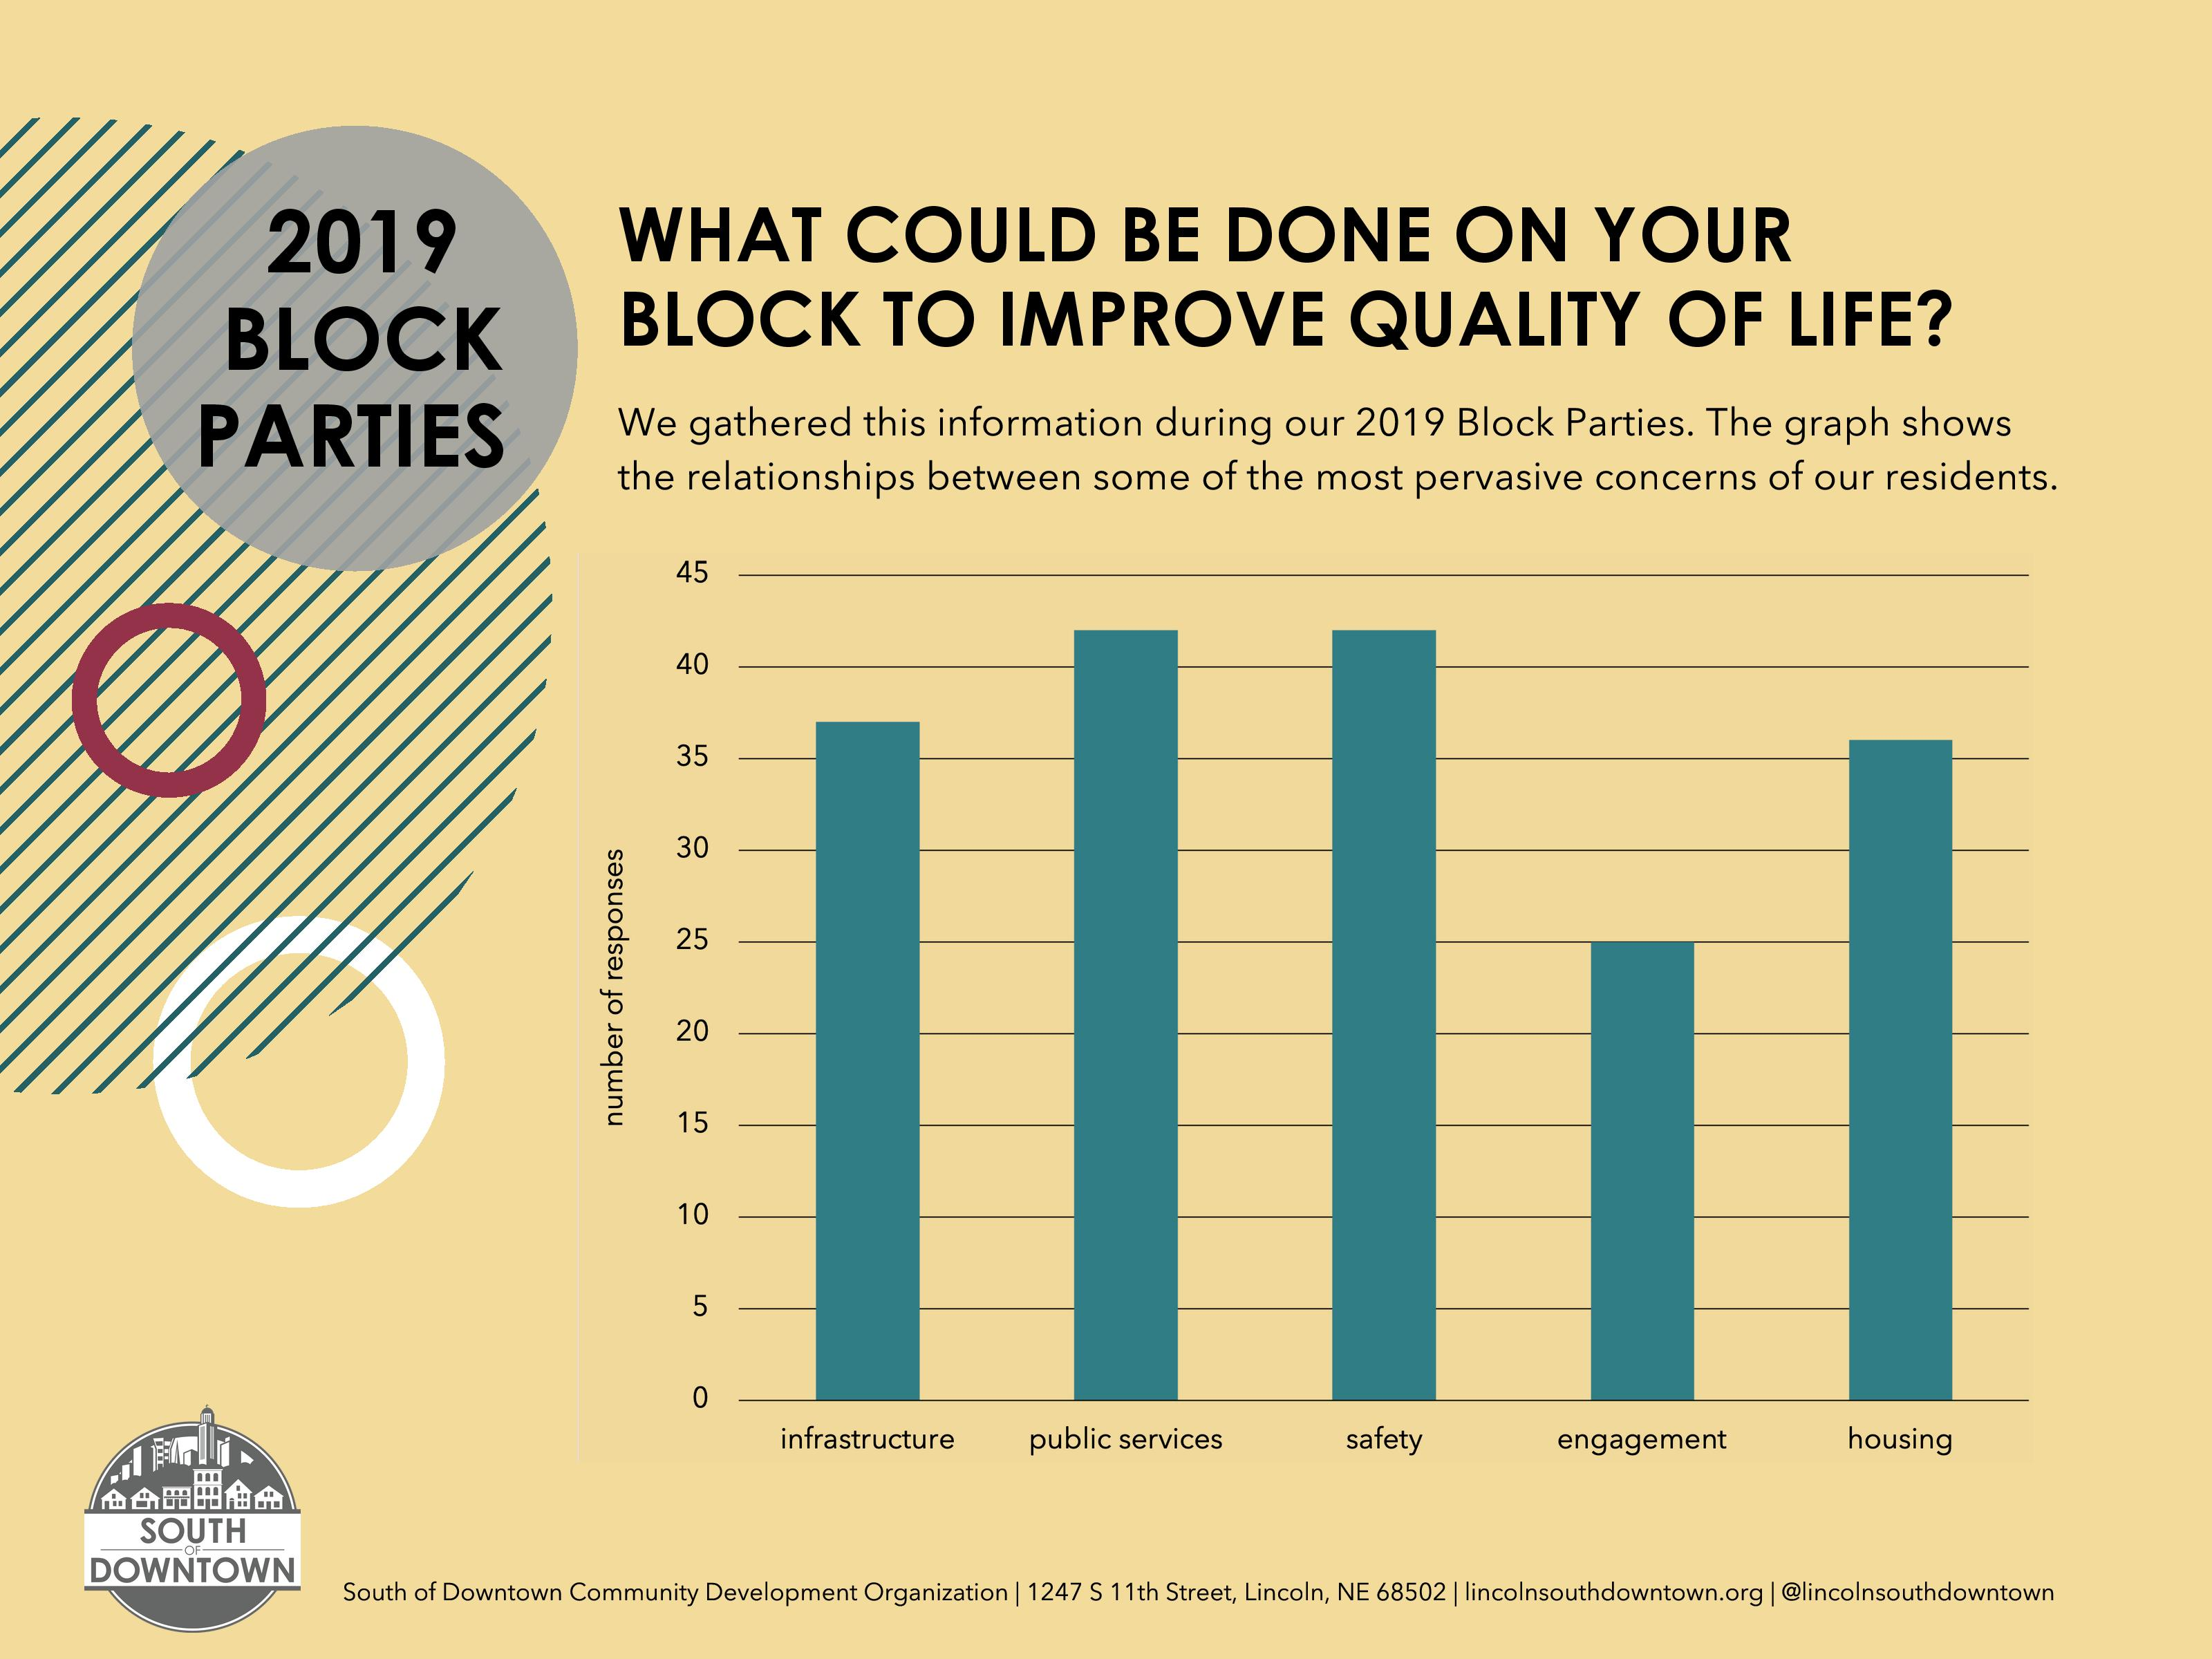 On Your Block: What are neighbors saying about their quality of life?